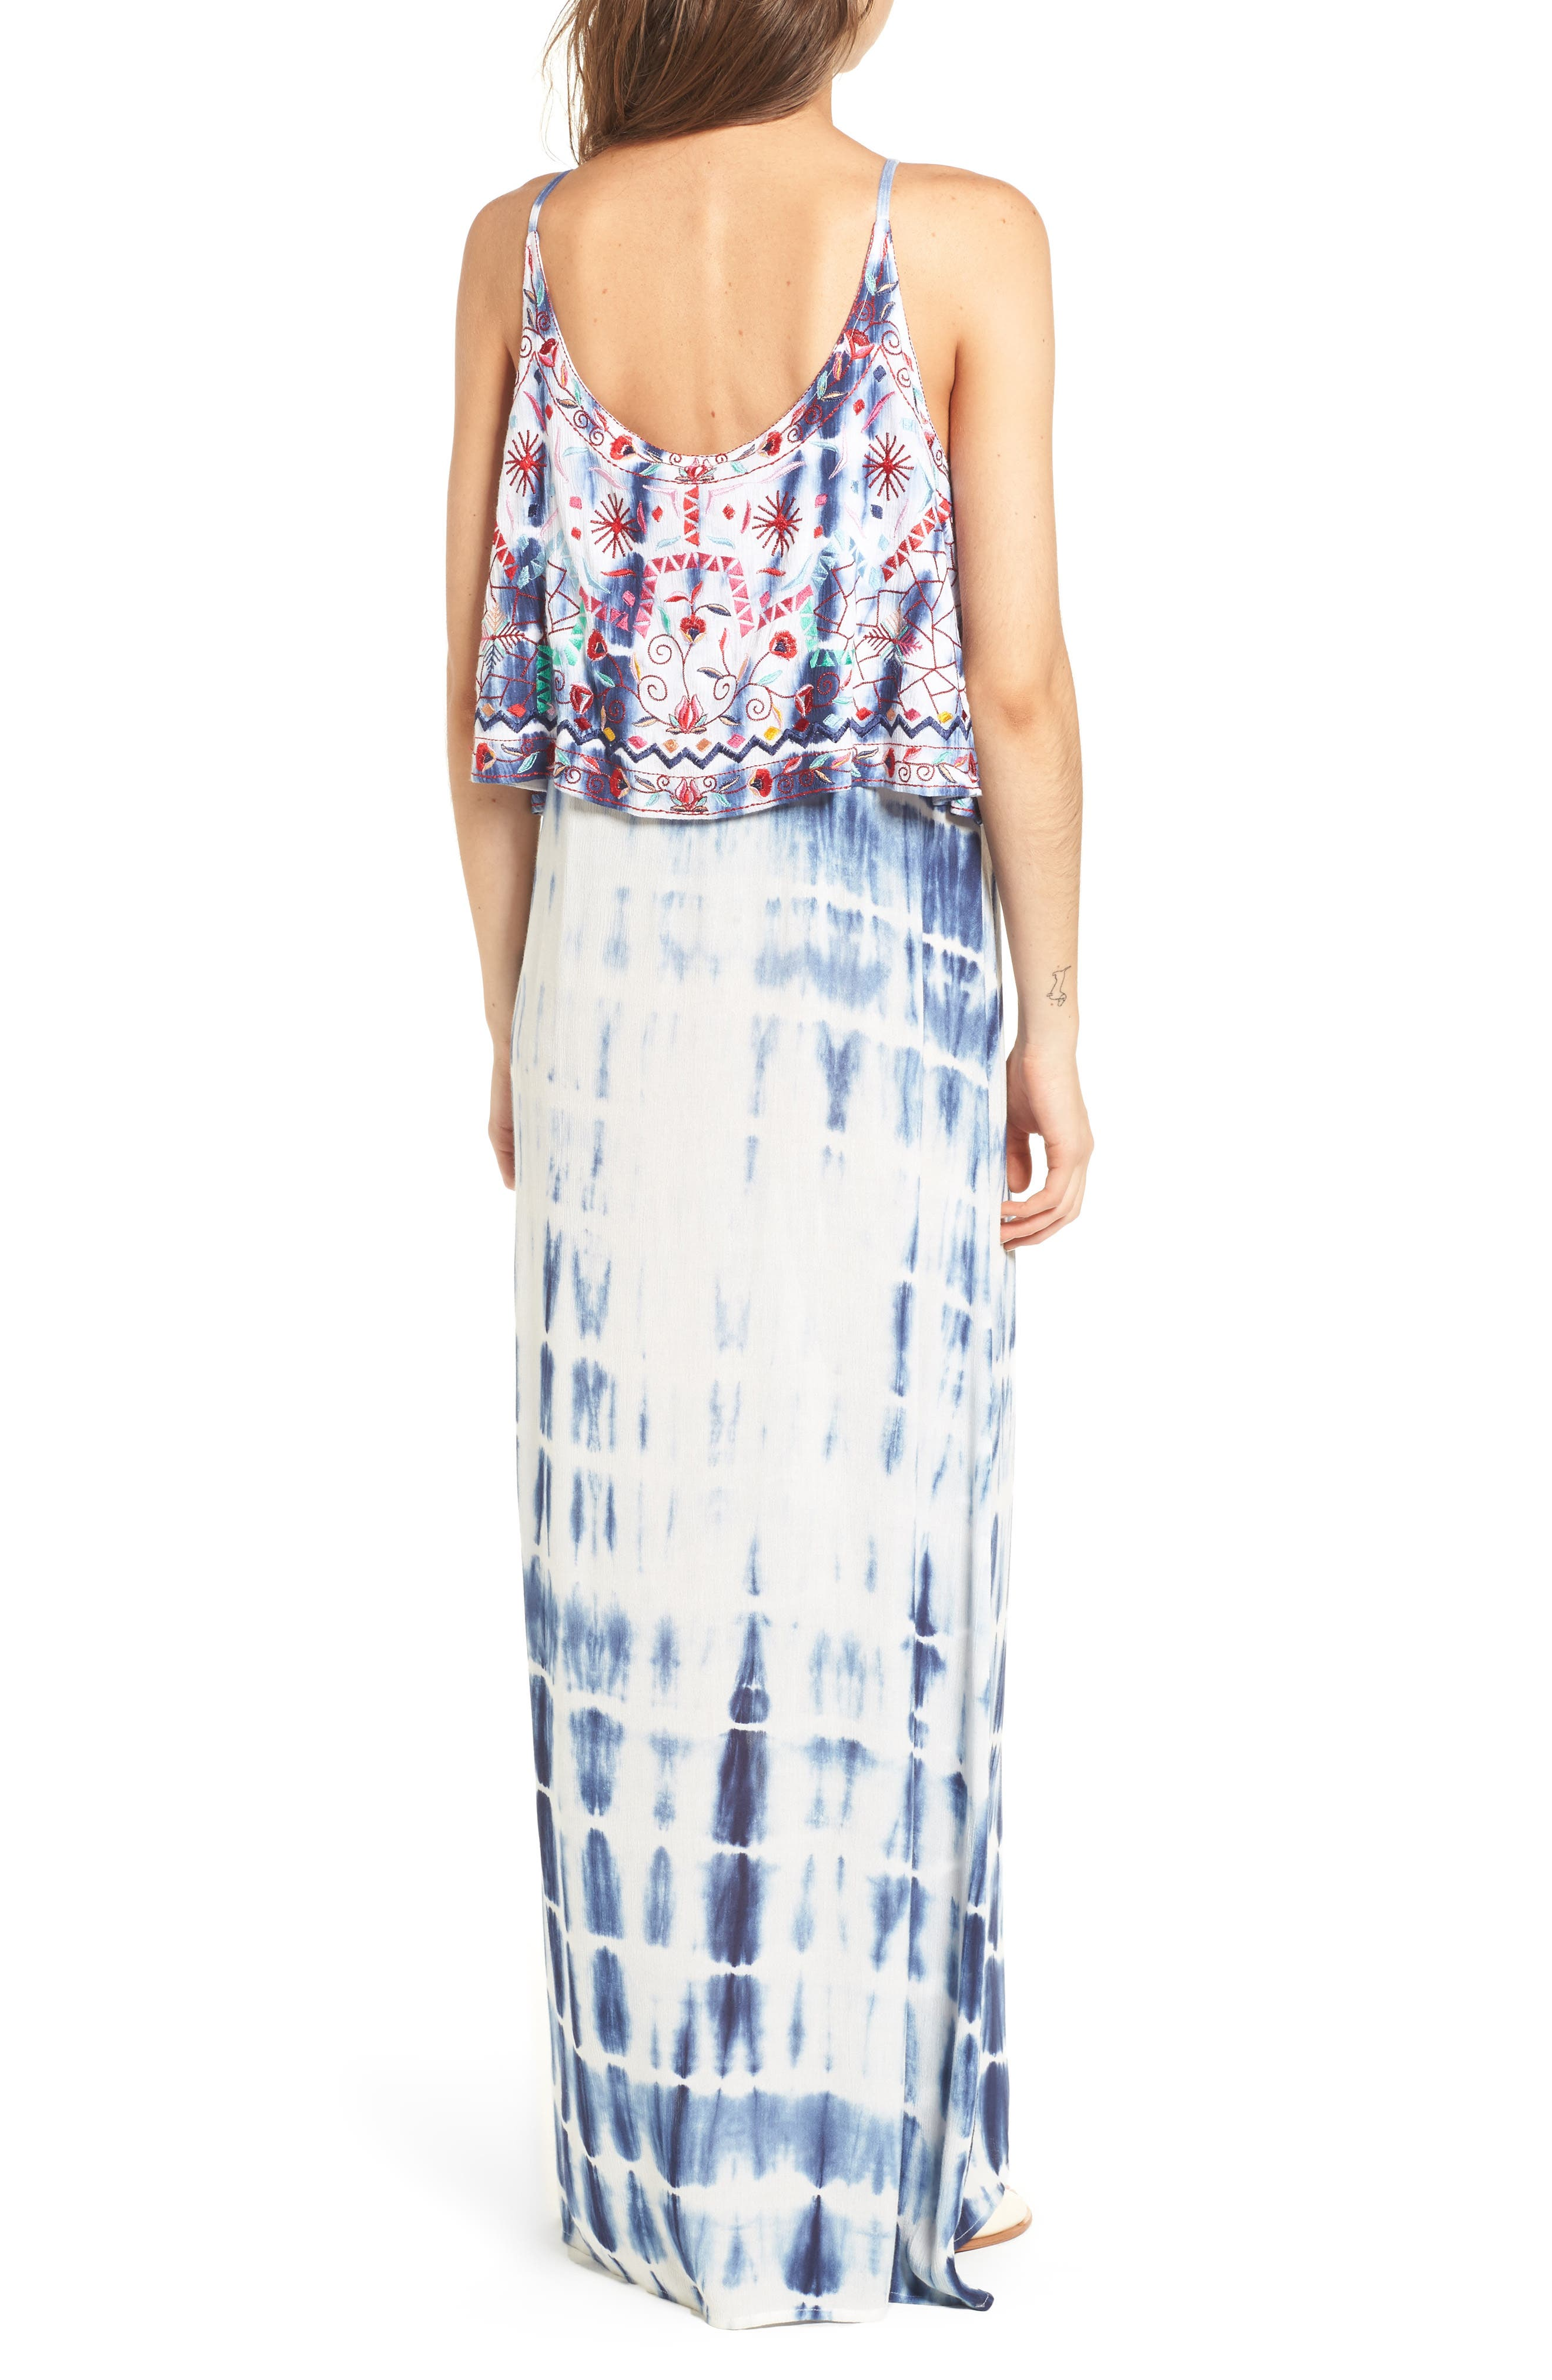 Catching The Waves Embroidered Maxi Dress,                             Alternate thumbnail 2, color,